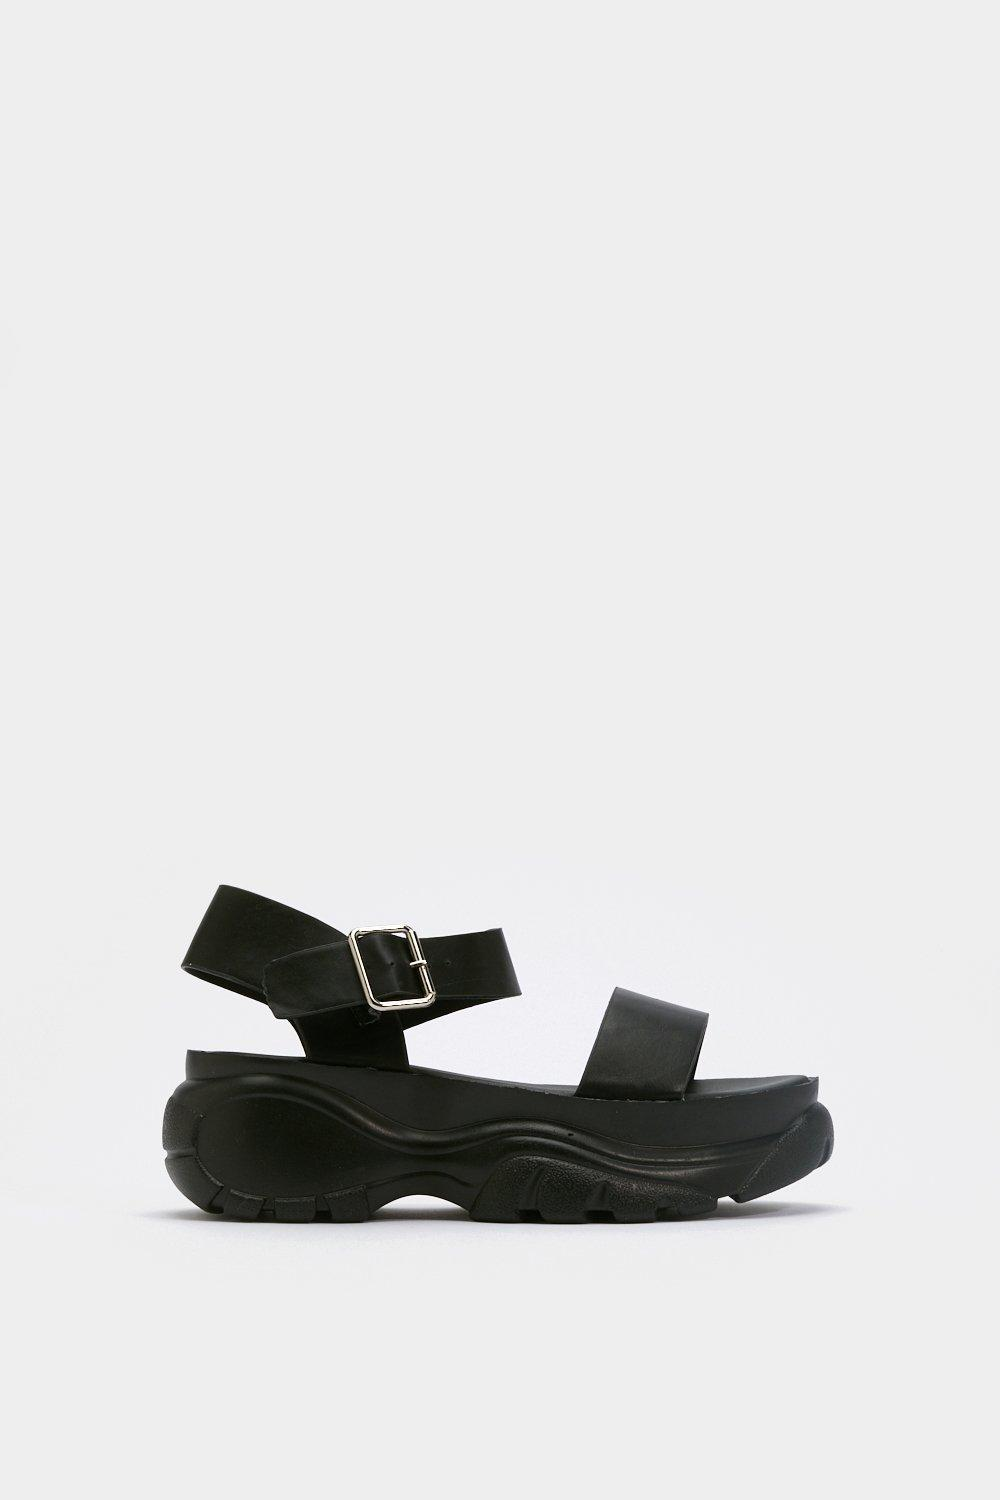 Strappy and You Know It Chunky Platform Sandals | Shop Clothes at Nasty Gal!